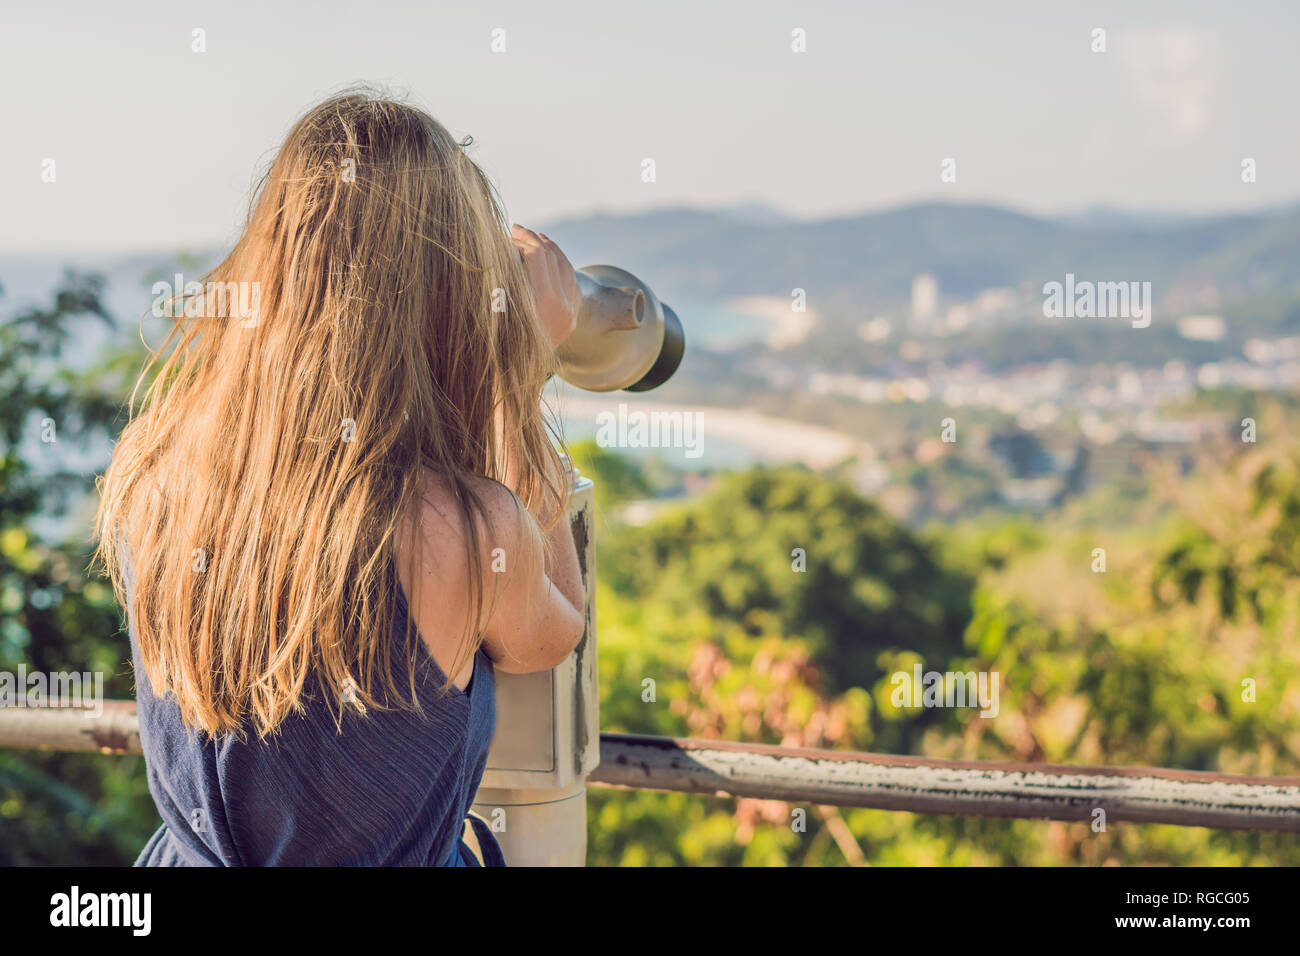 young beautiful blond woman enjoy the view with an coin operated binoculars. The water and the sky is blue. she wears a white dress and sunglasses - Stock Image